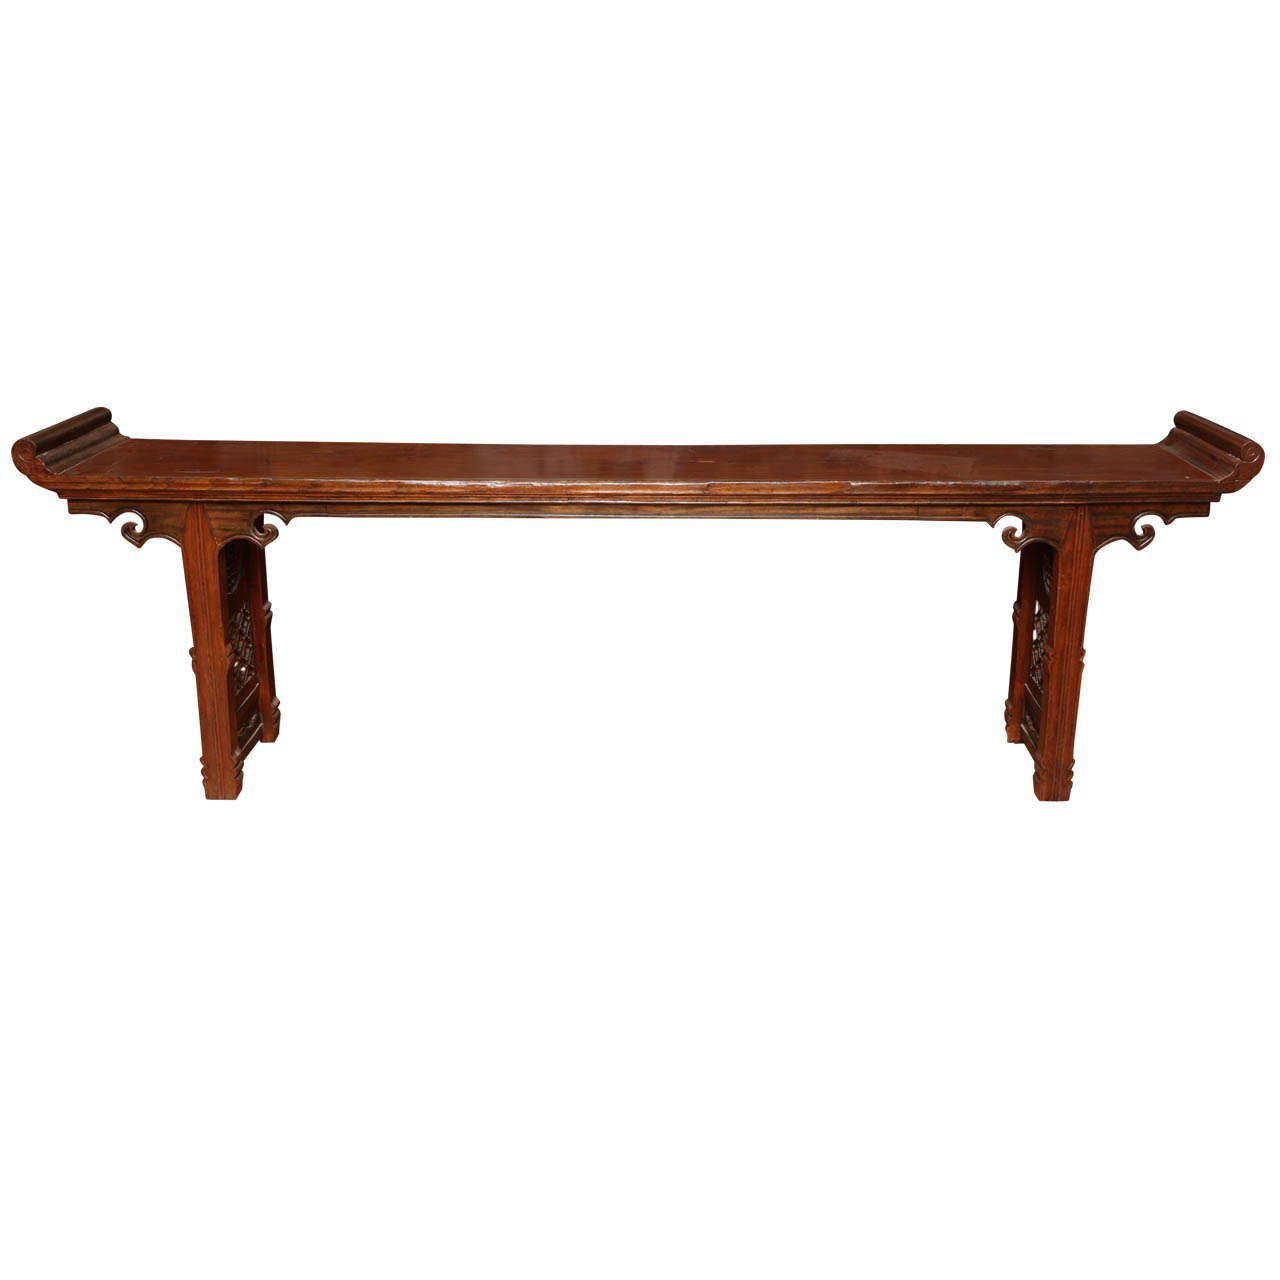 19th Century Chinese Long Carved Wooden Console Table With Fretwork Design  For Sale   Image 11